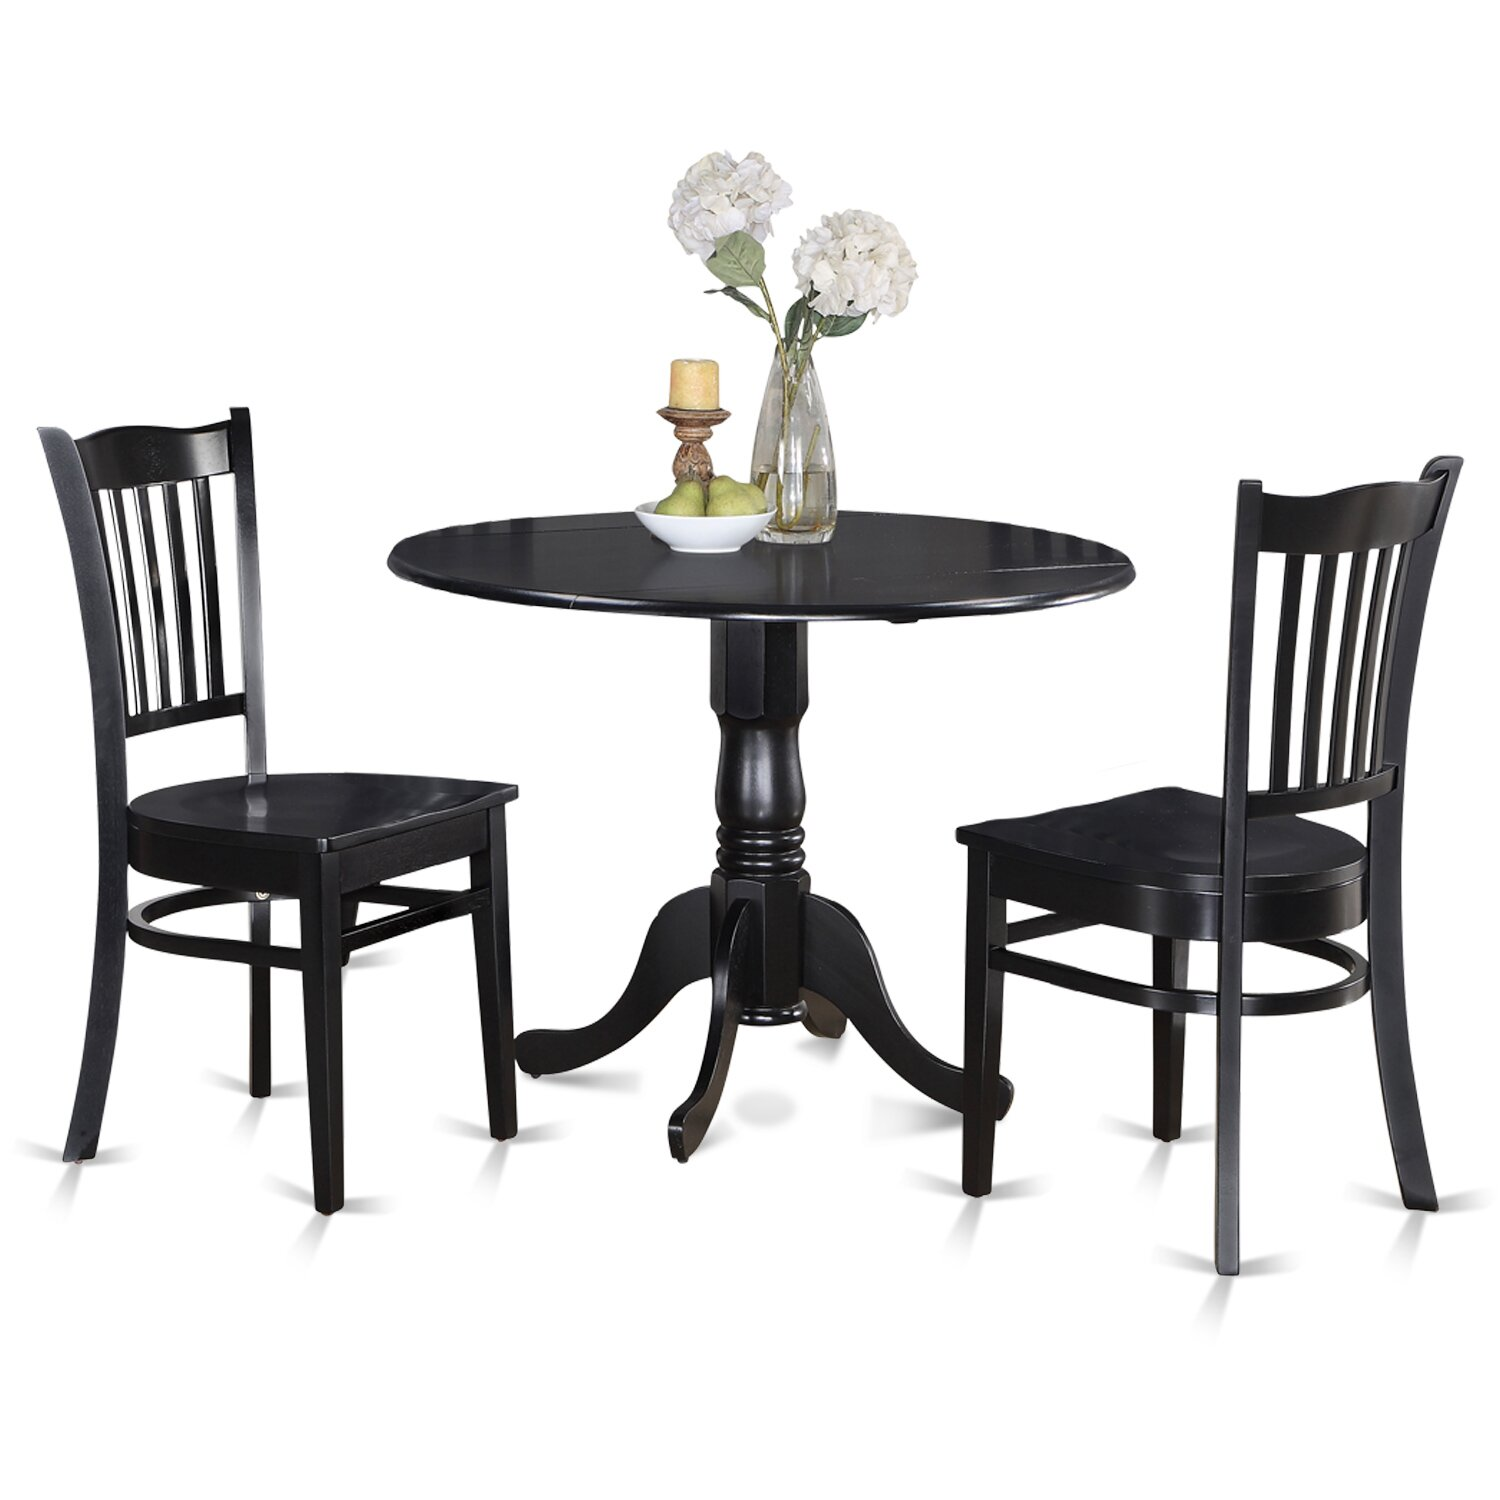 Wooden Importers Dublin 3 Piece Dining Set & Reviews